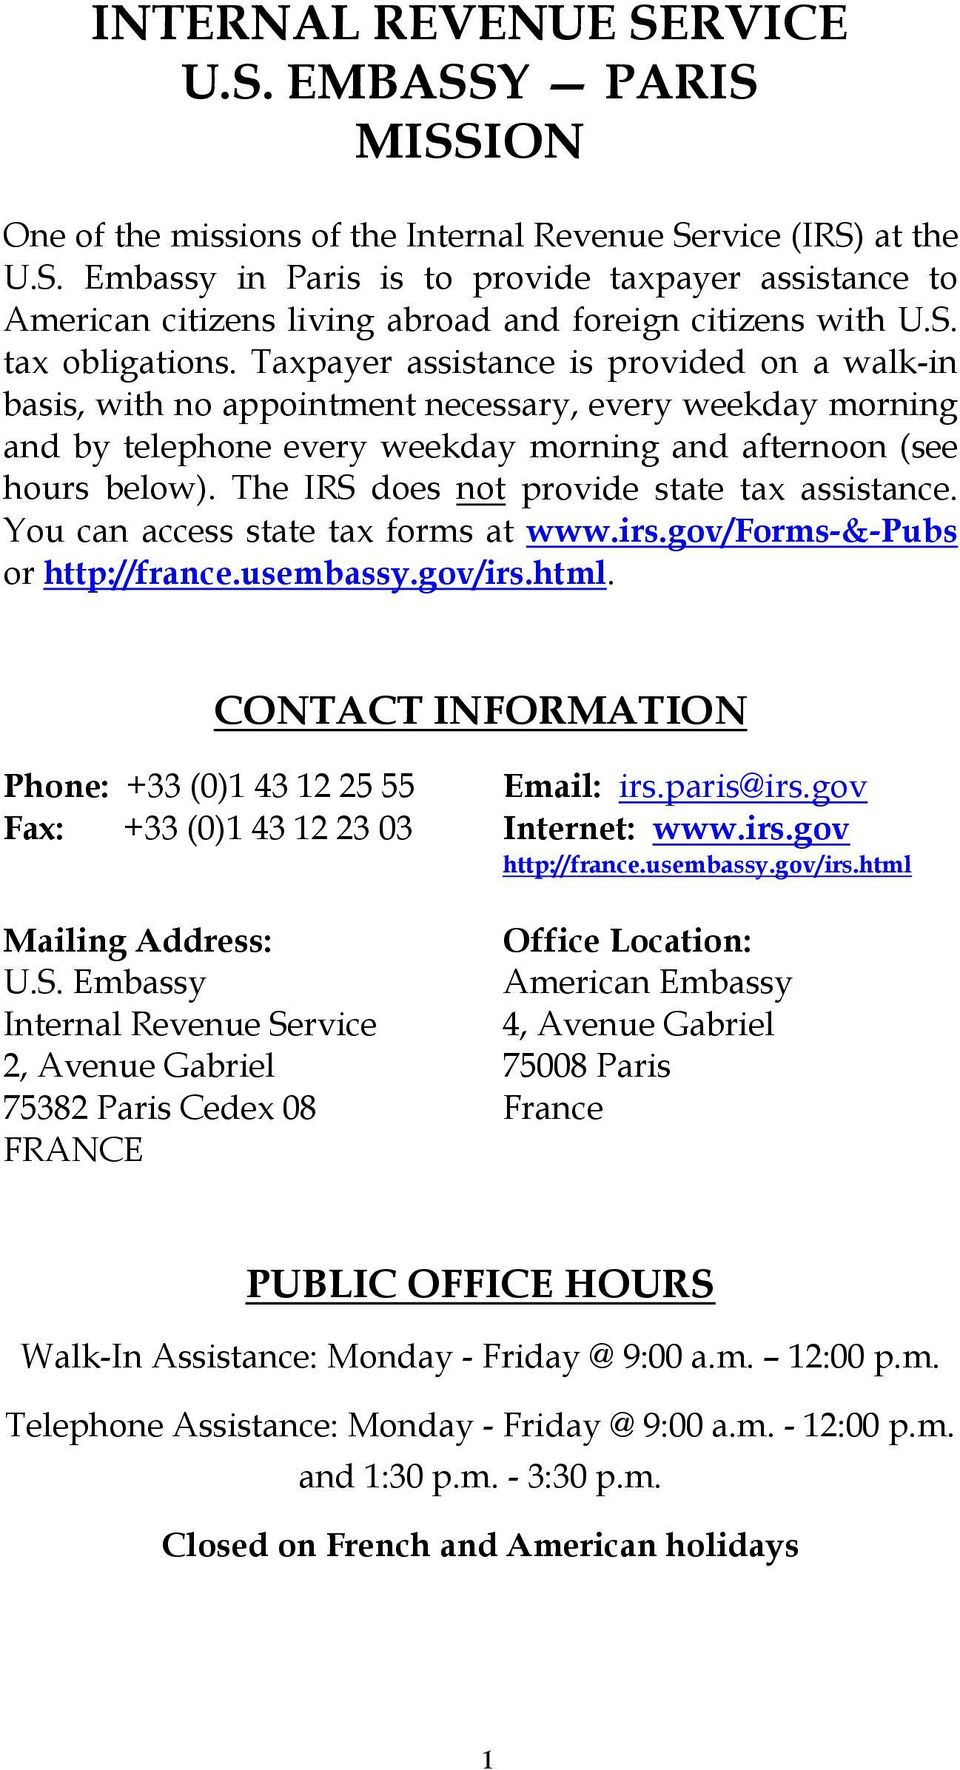 The IRS does not provide state tax assistance. You can access state tax forms at www.irs.gov/forms-&-pubs or http://france.usembassy.gov/irs.html.